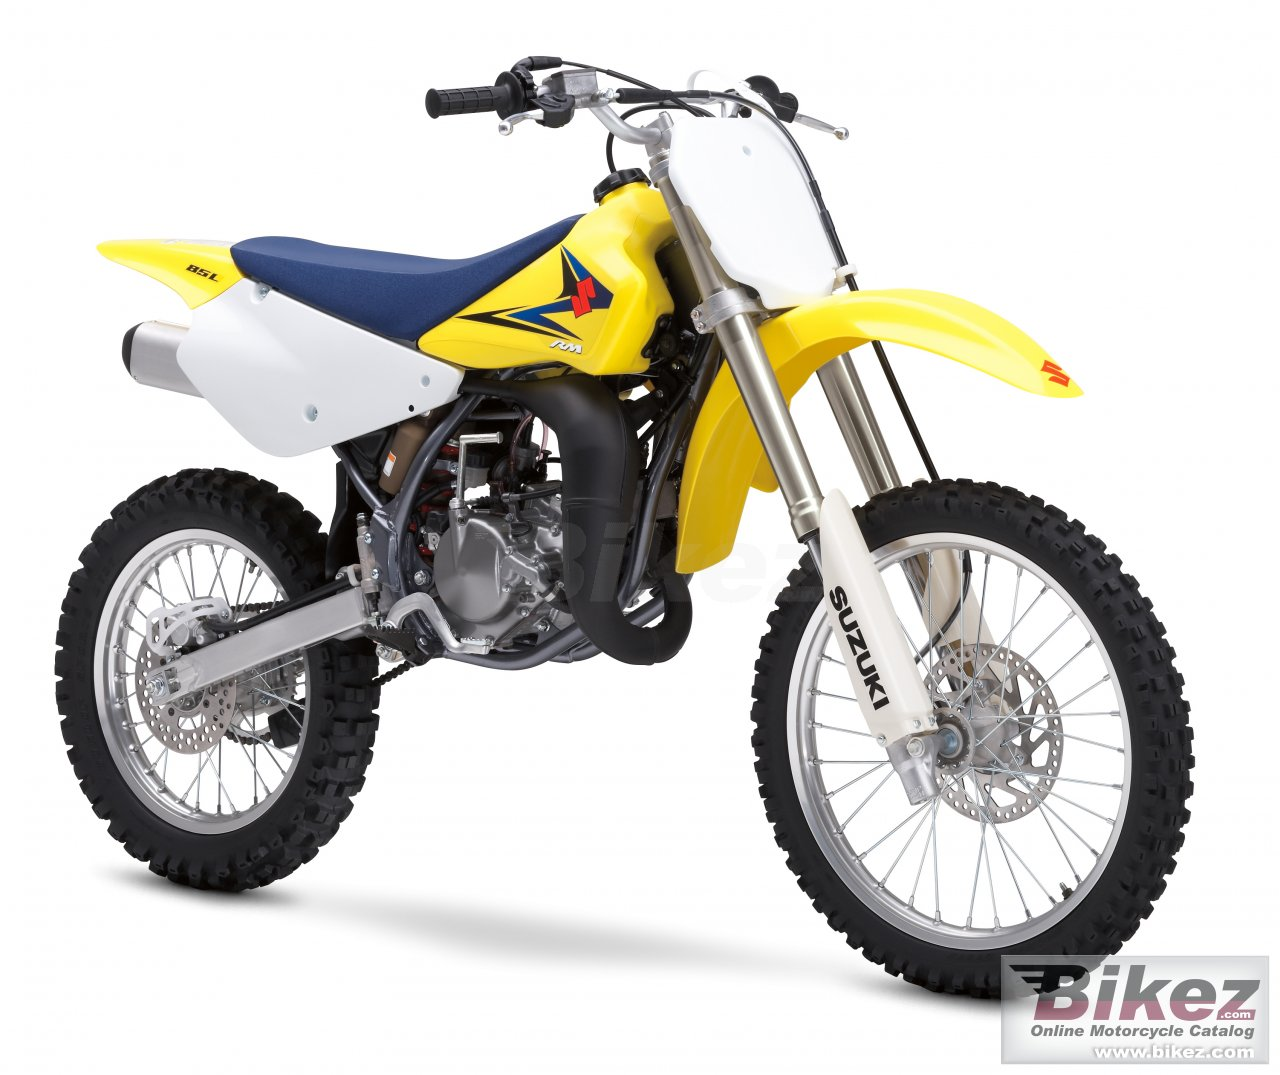 Big Suzuki rm85l picture and wallpaper from Bikez.com